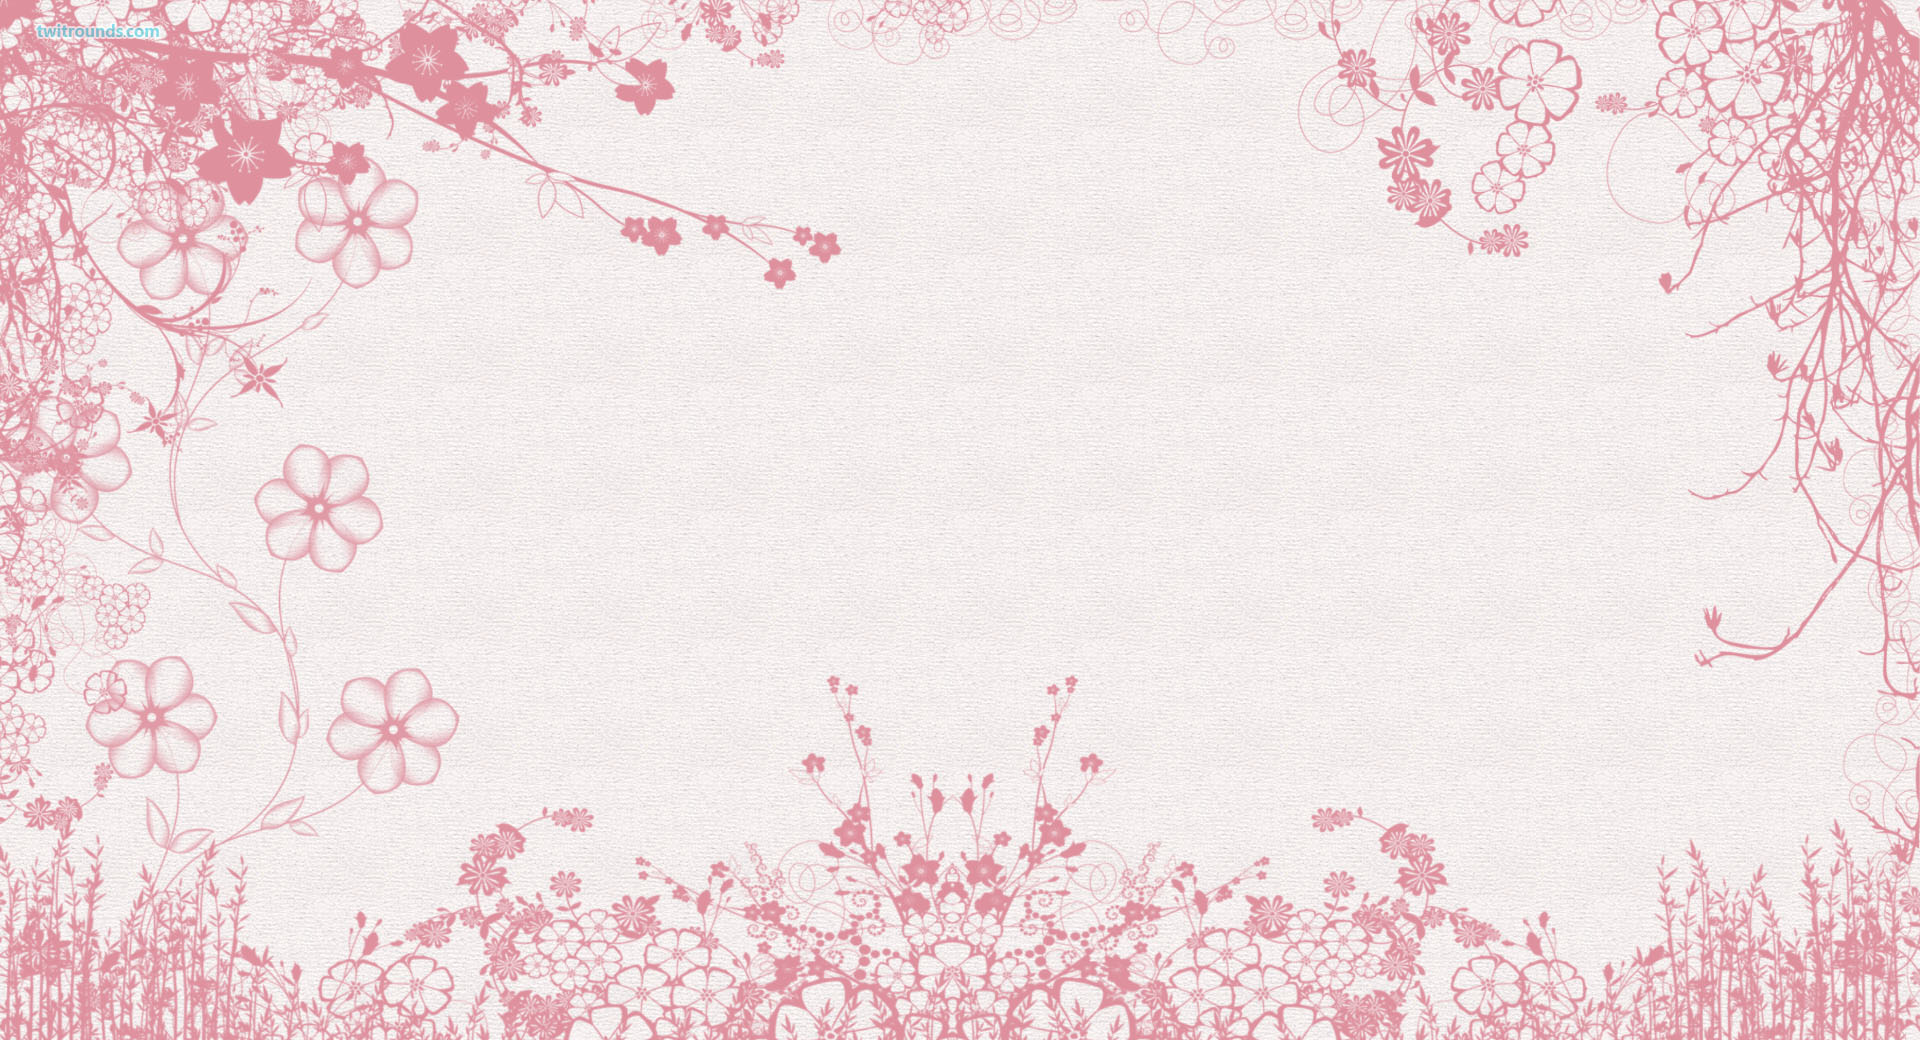 Pink Flowers 1 Pink And White Flower Pattern Desktop Wallpaper Desktop Wallpaper